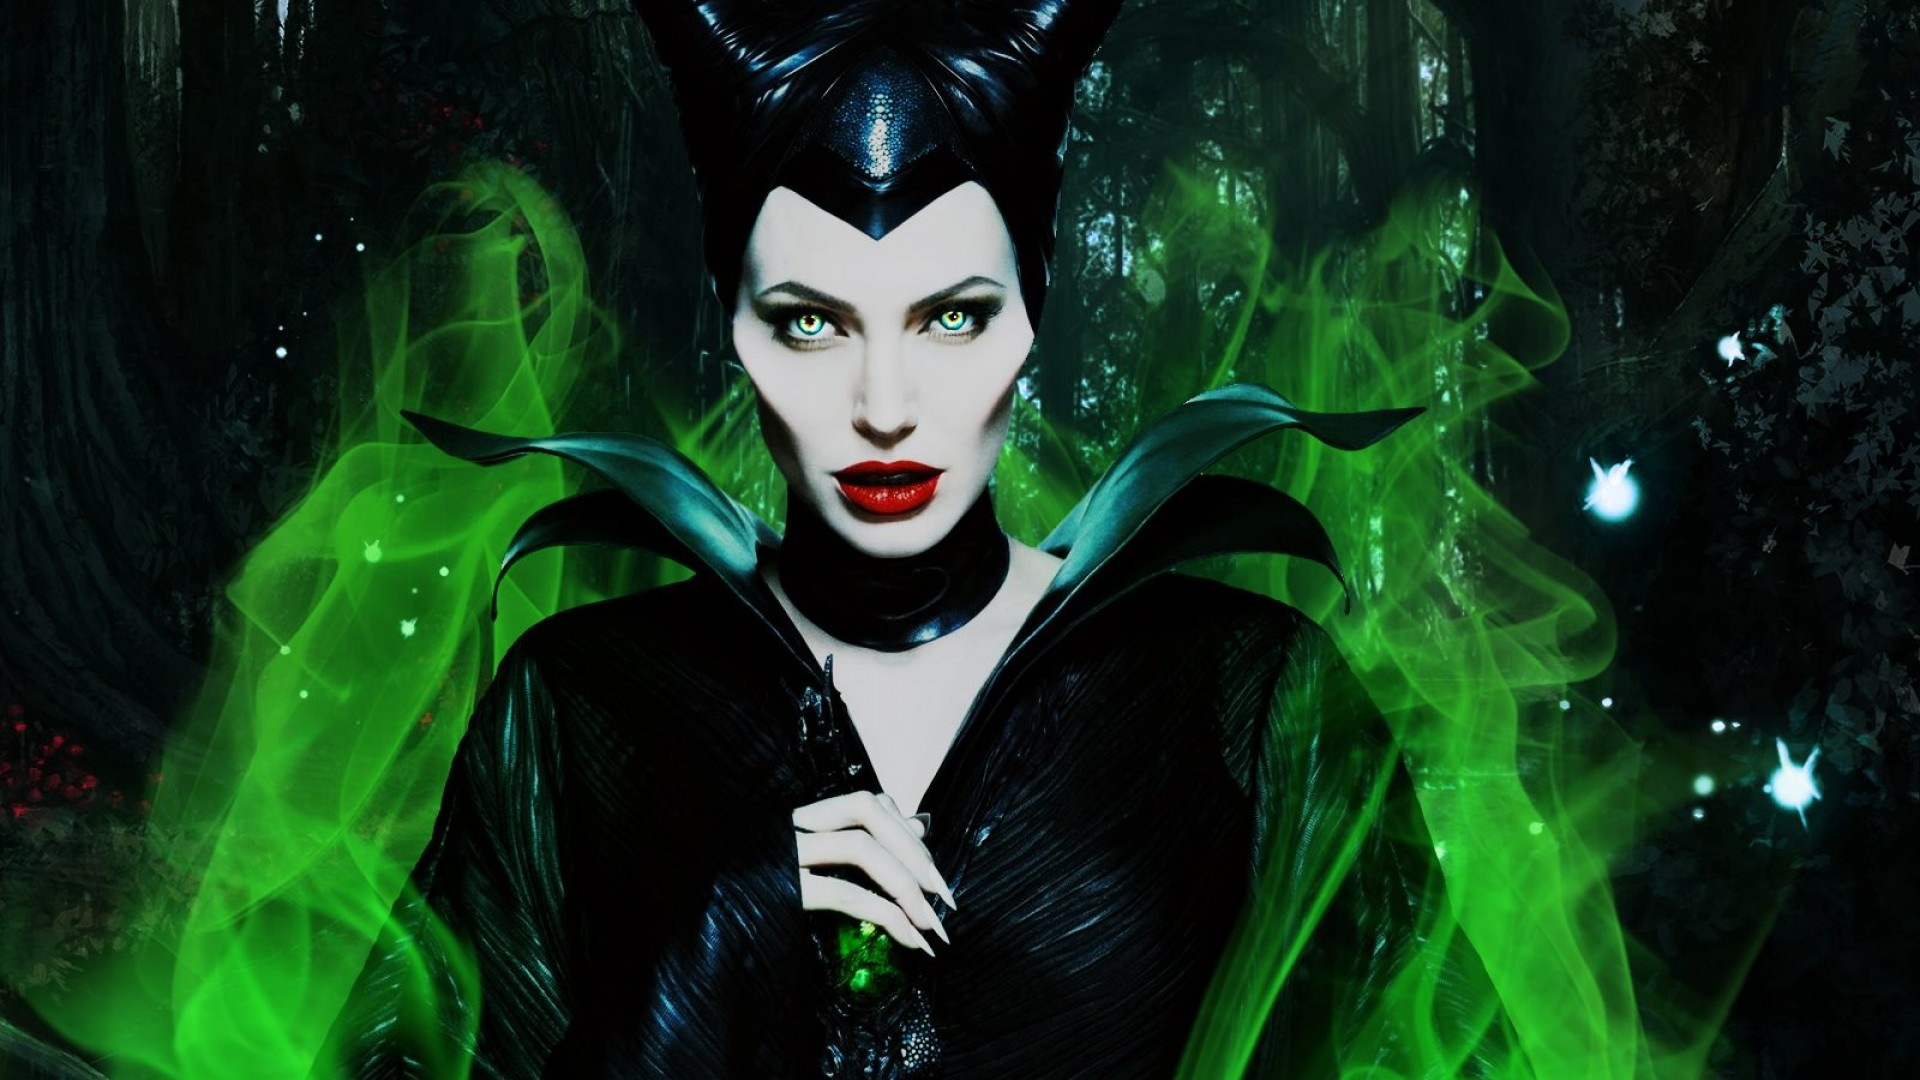 Maleficent Movie 2014 Hd Ipad Iphone Wallpapers: Maleficent Wallpaper 1